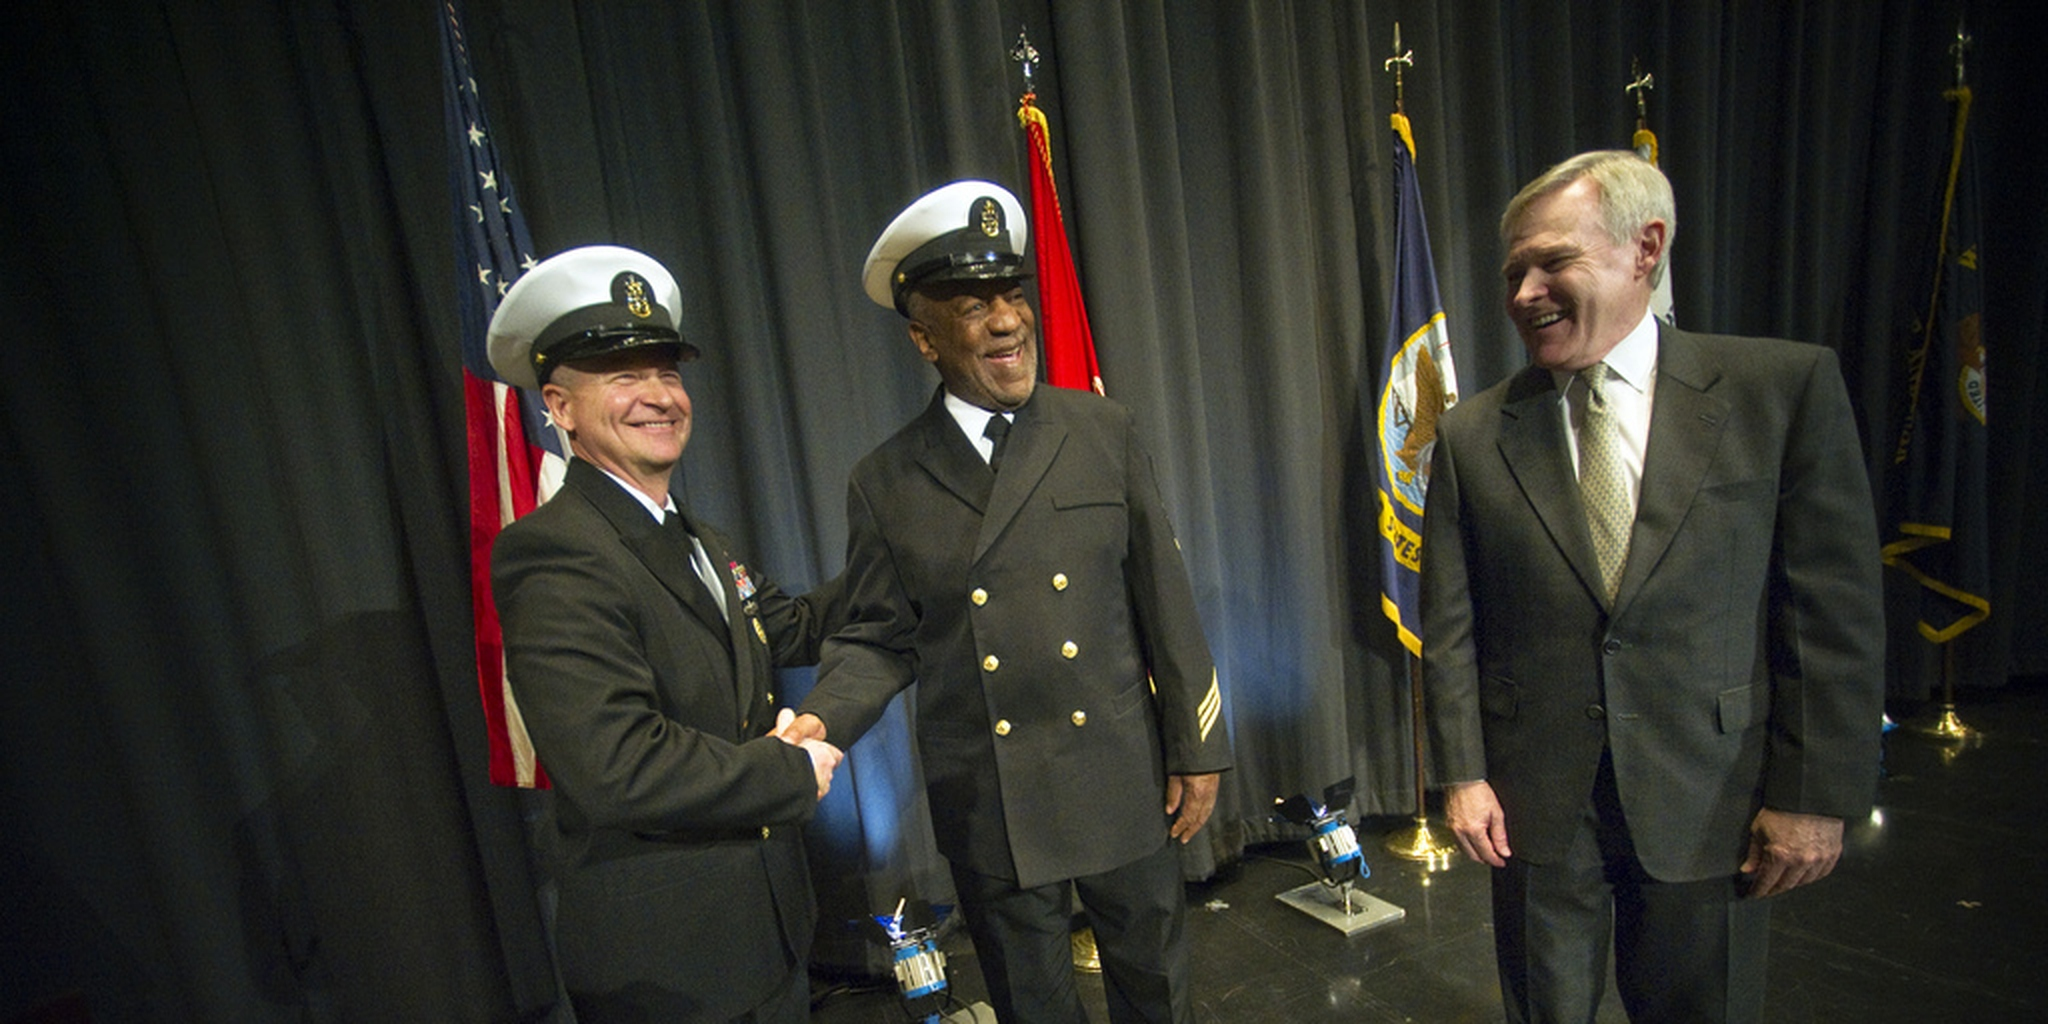 Bill Cosby Being Named Honorary Navy Chief